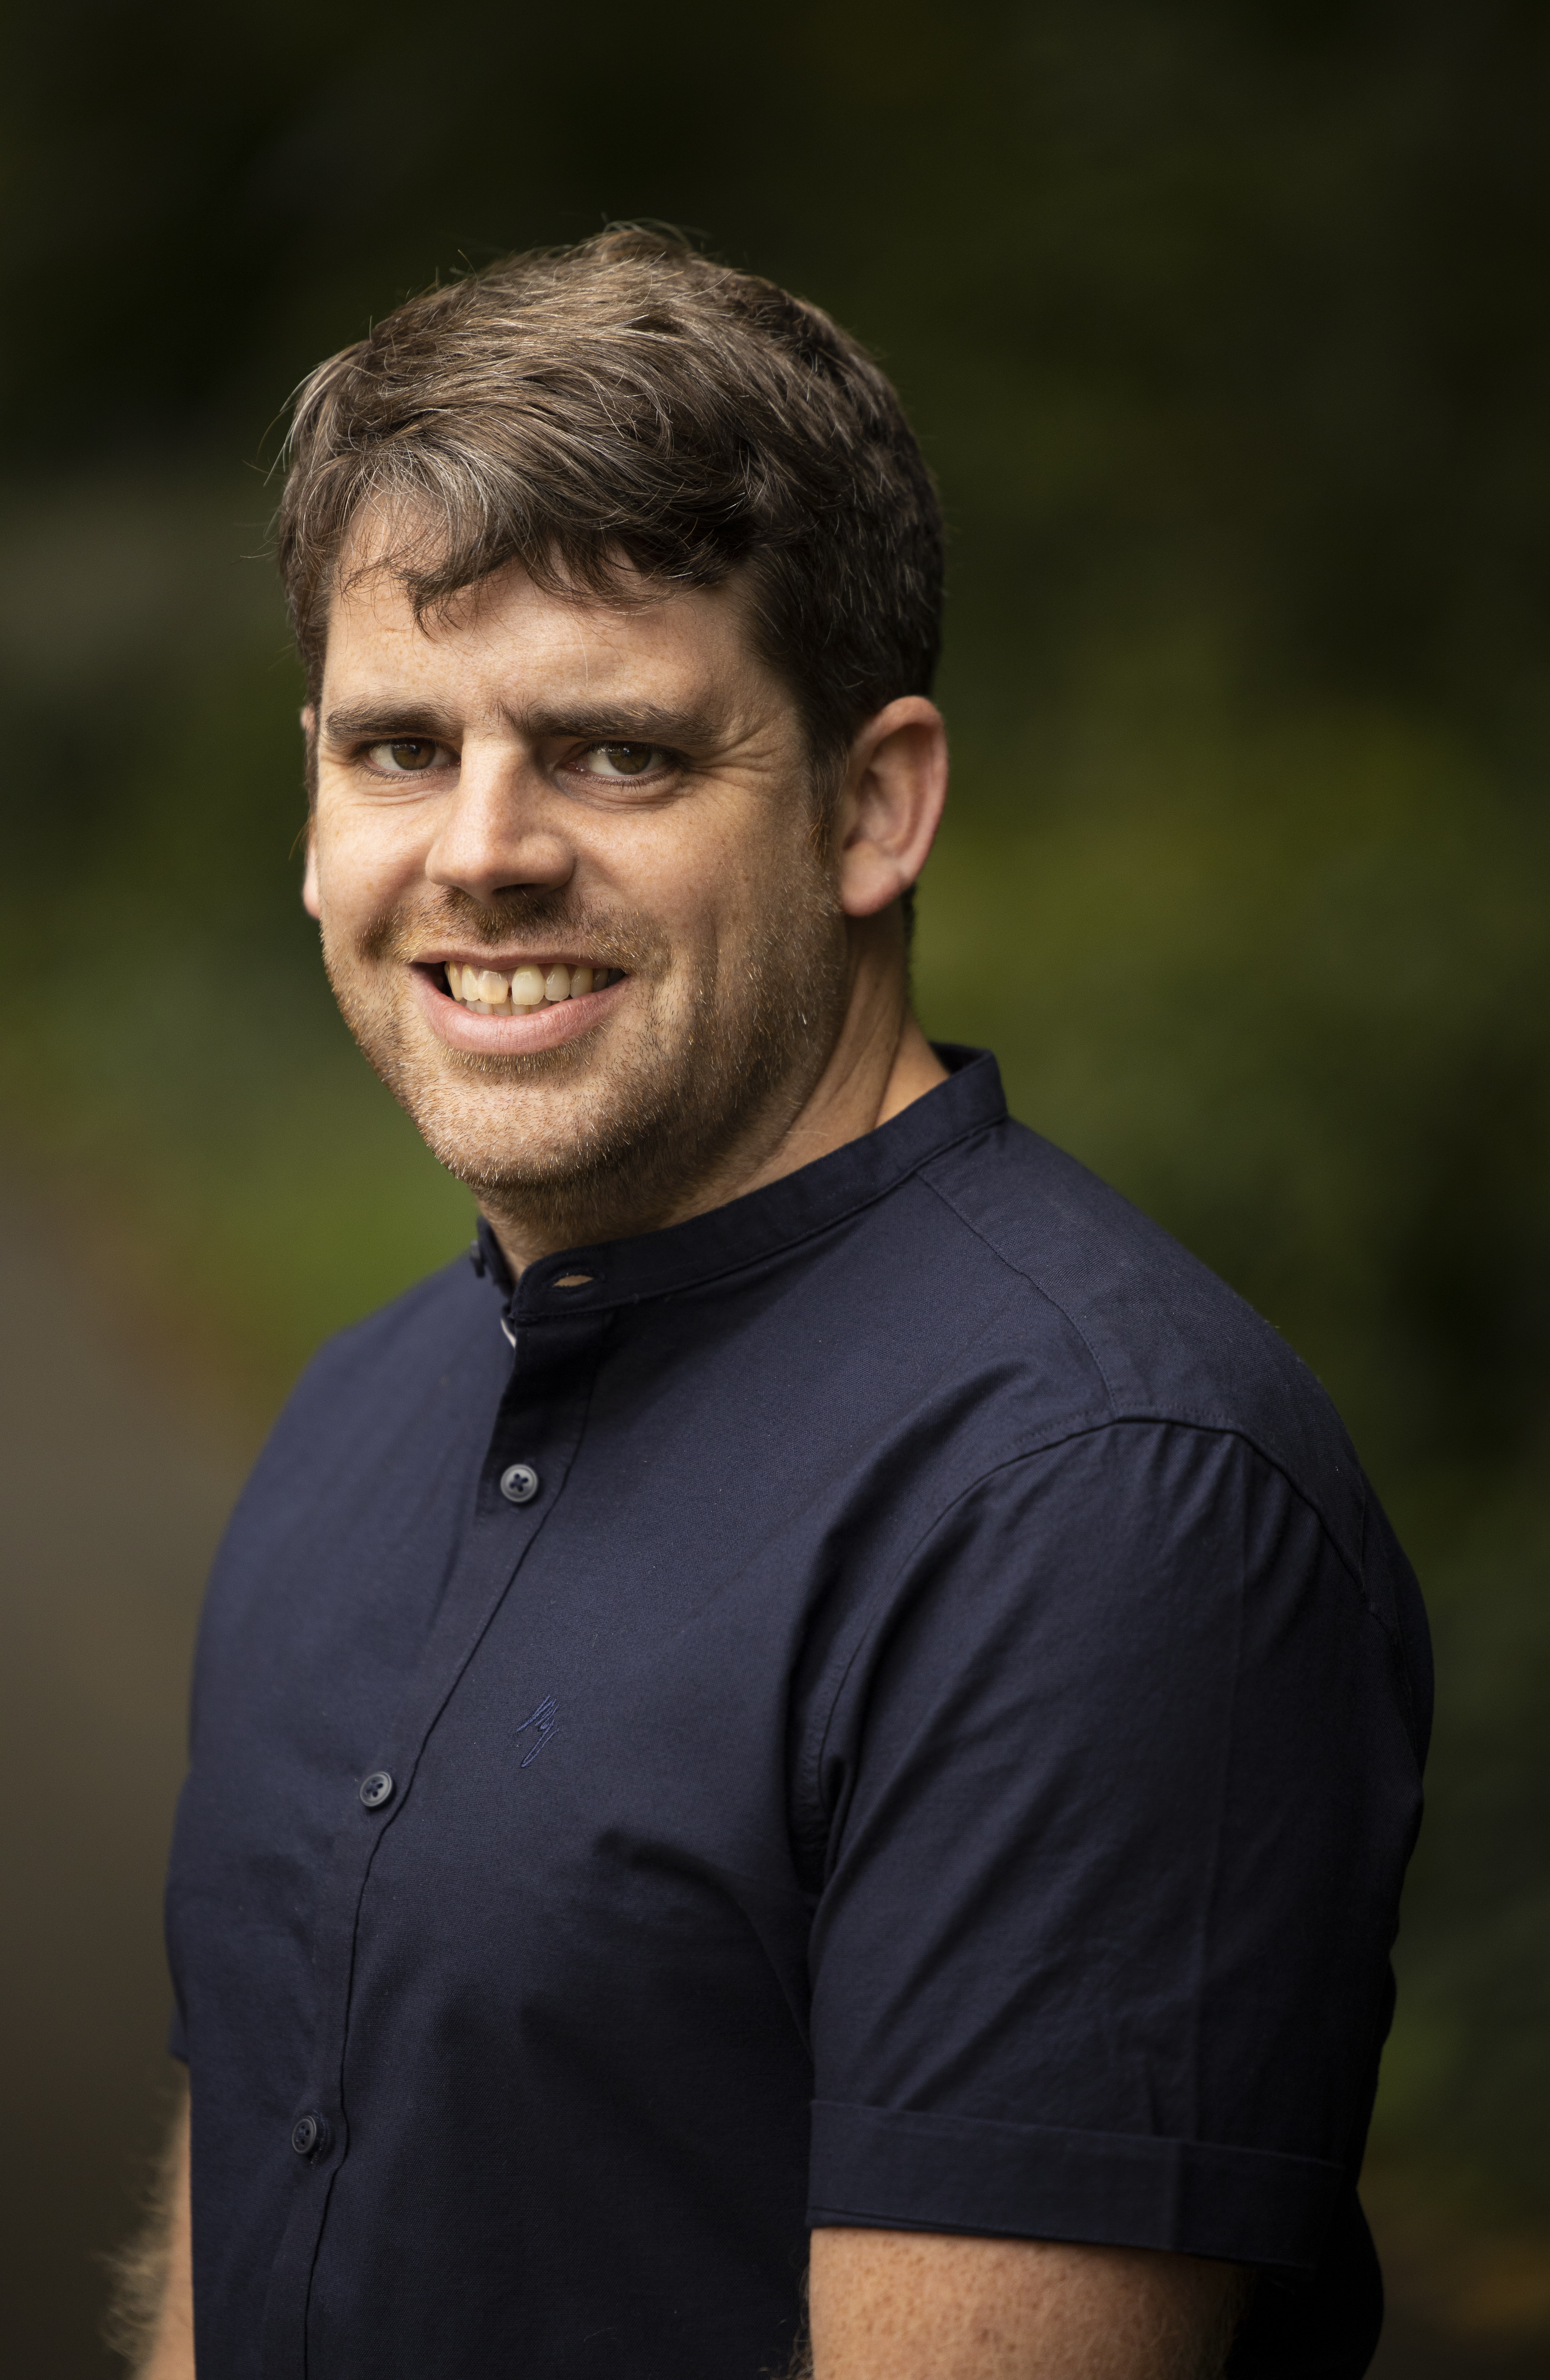 Dr. Cathal Wilson